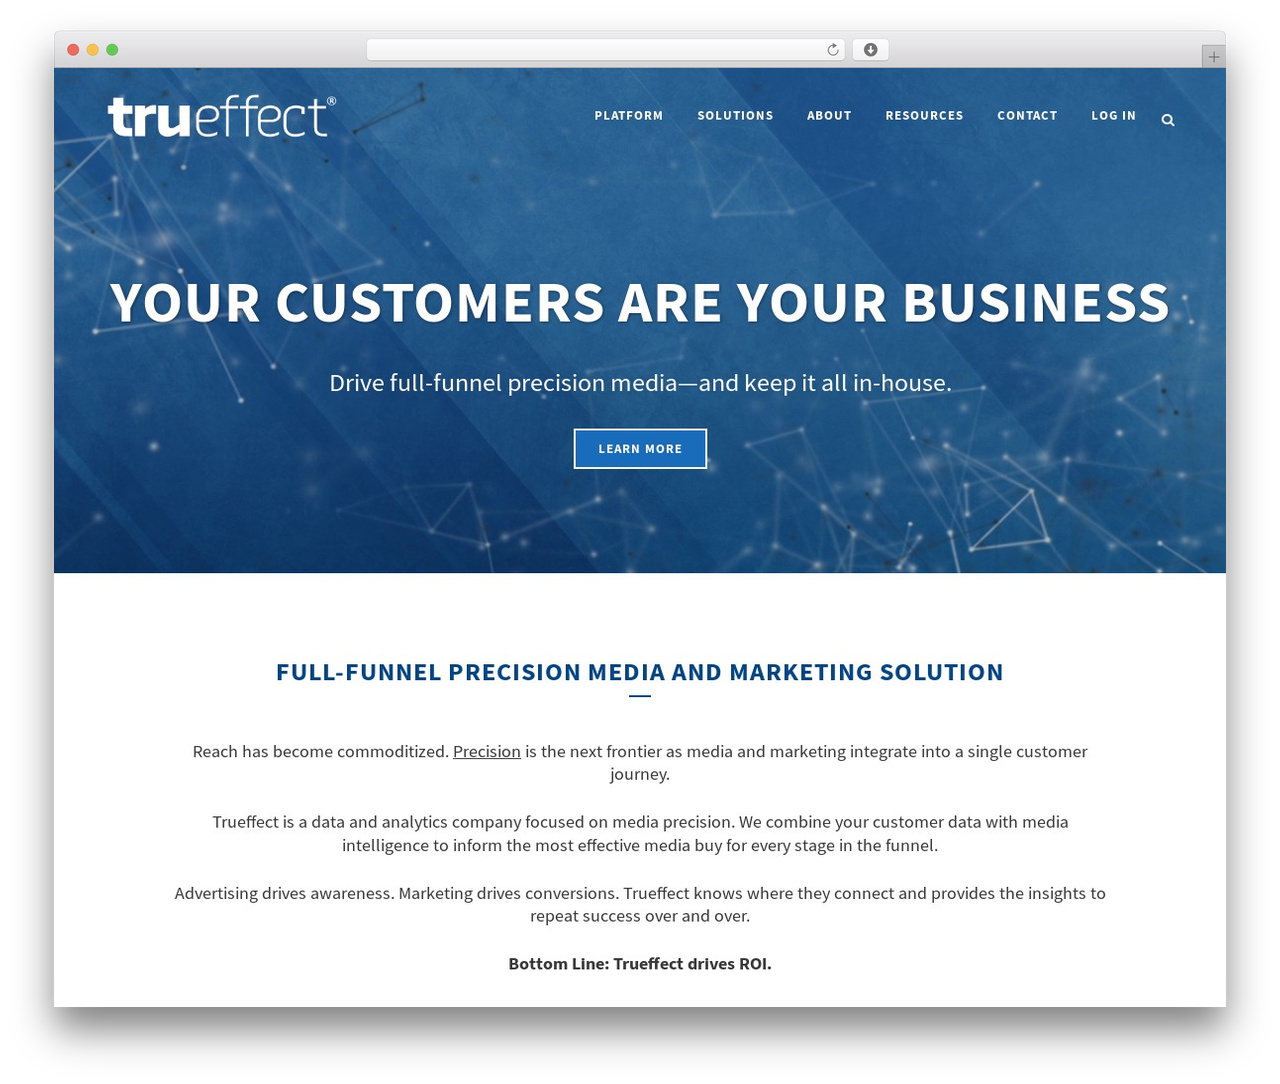 Trueffect 2016 WordPress template for business - trueffect.com